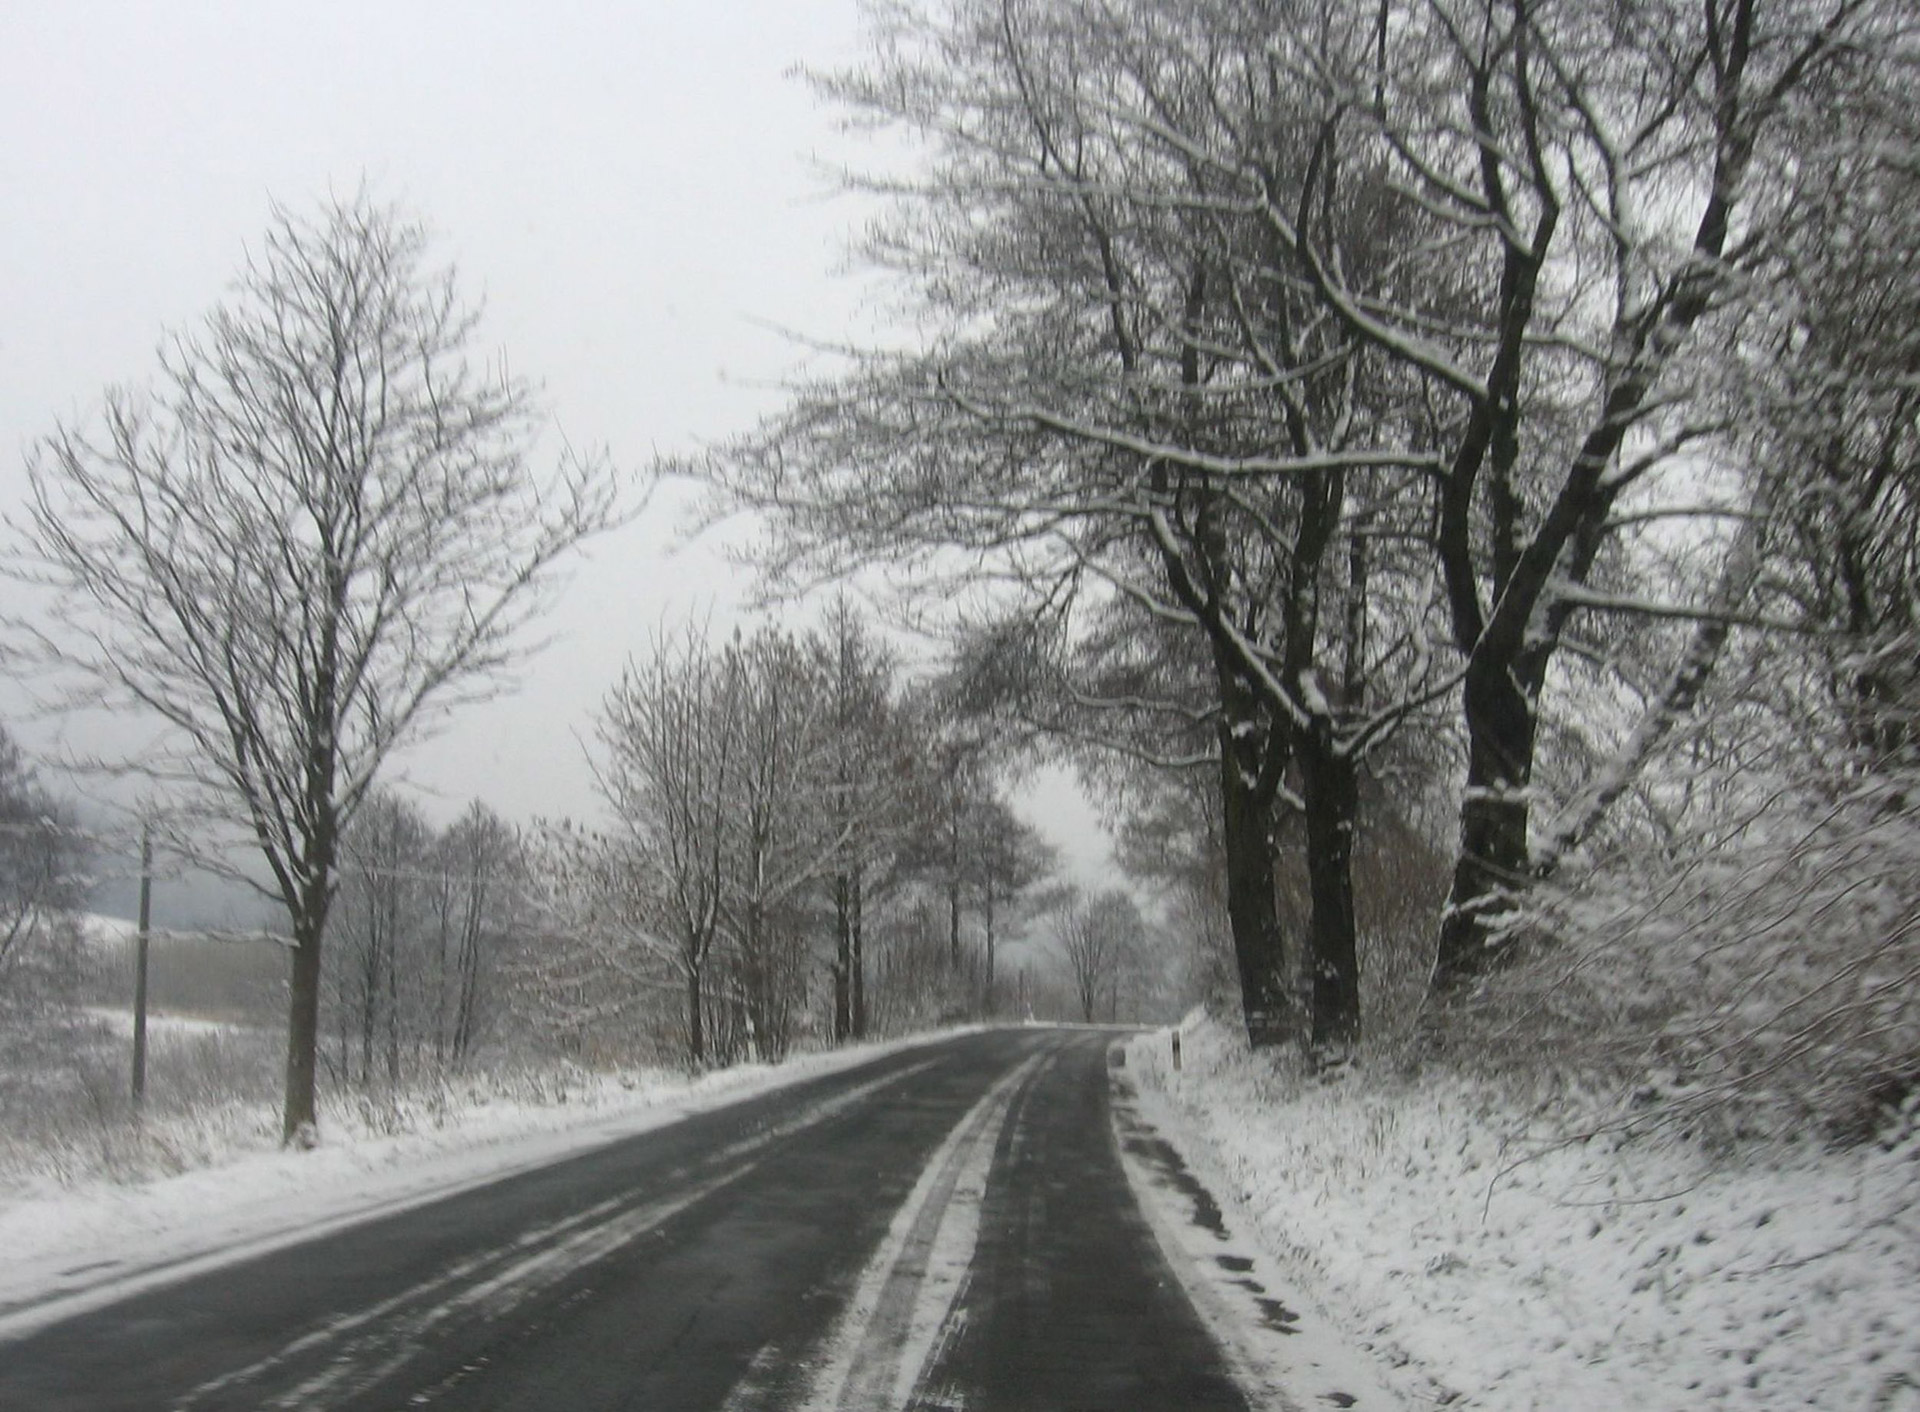 Snow can impact your winter workload